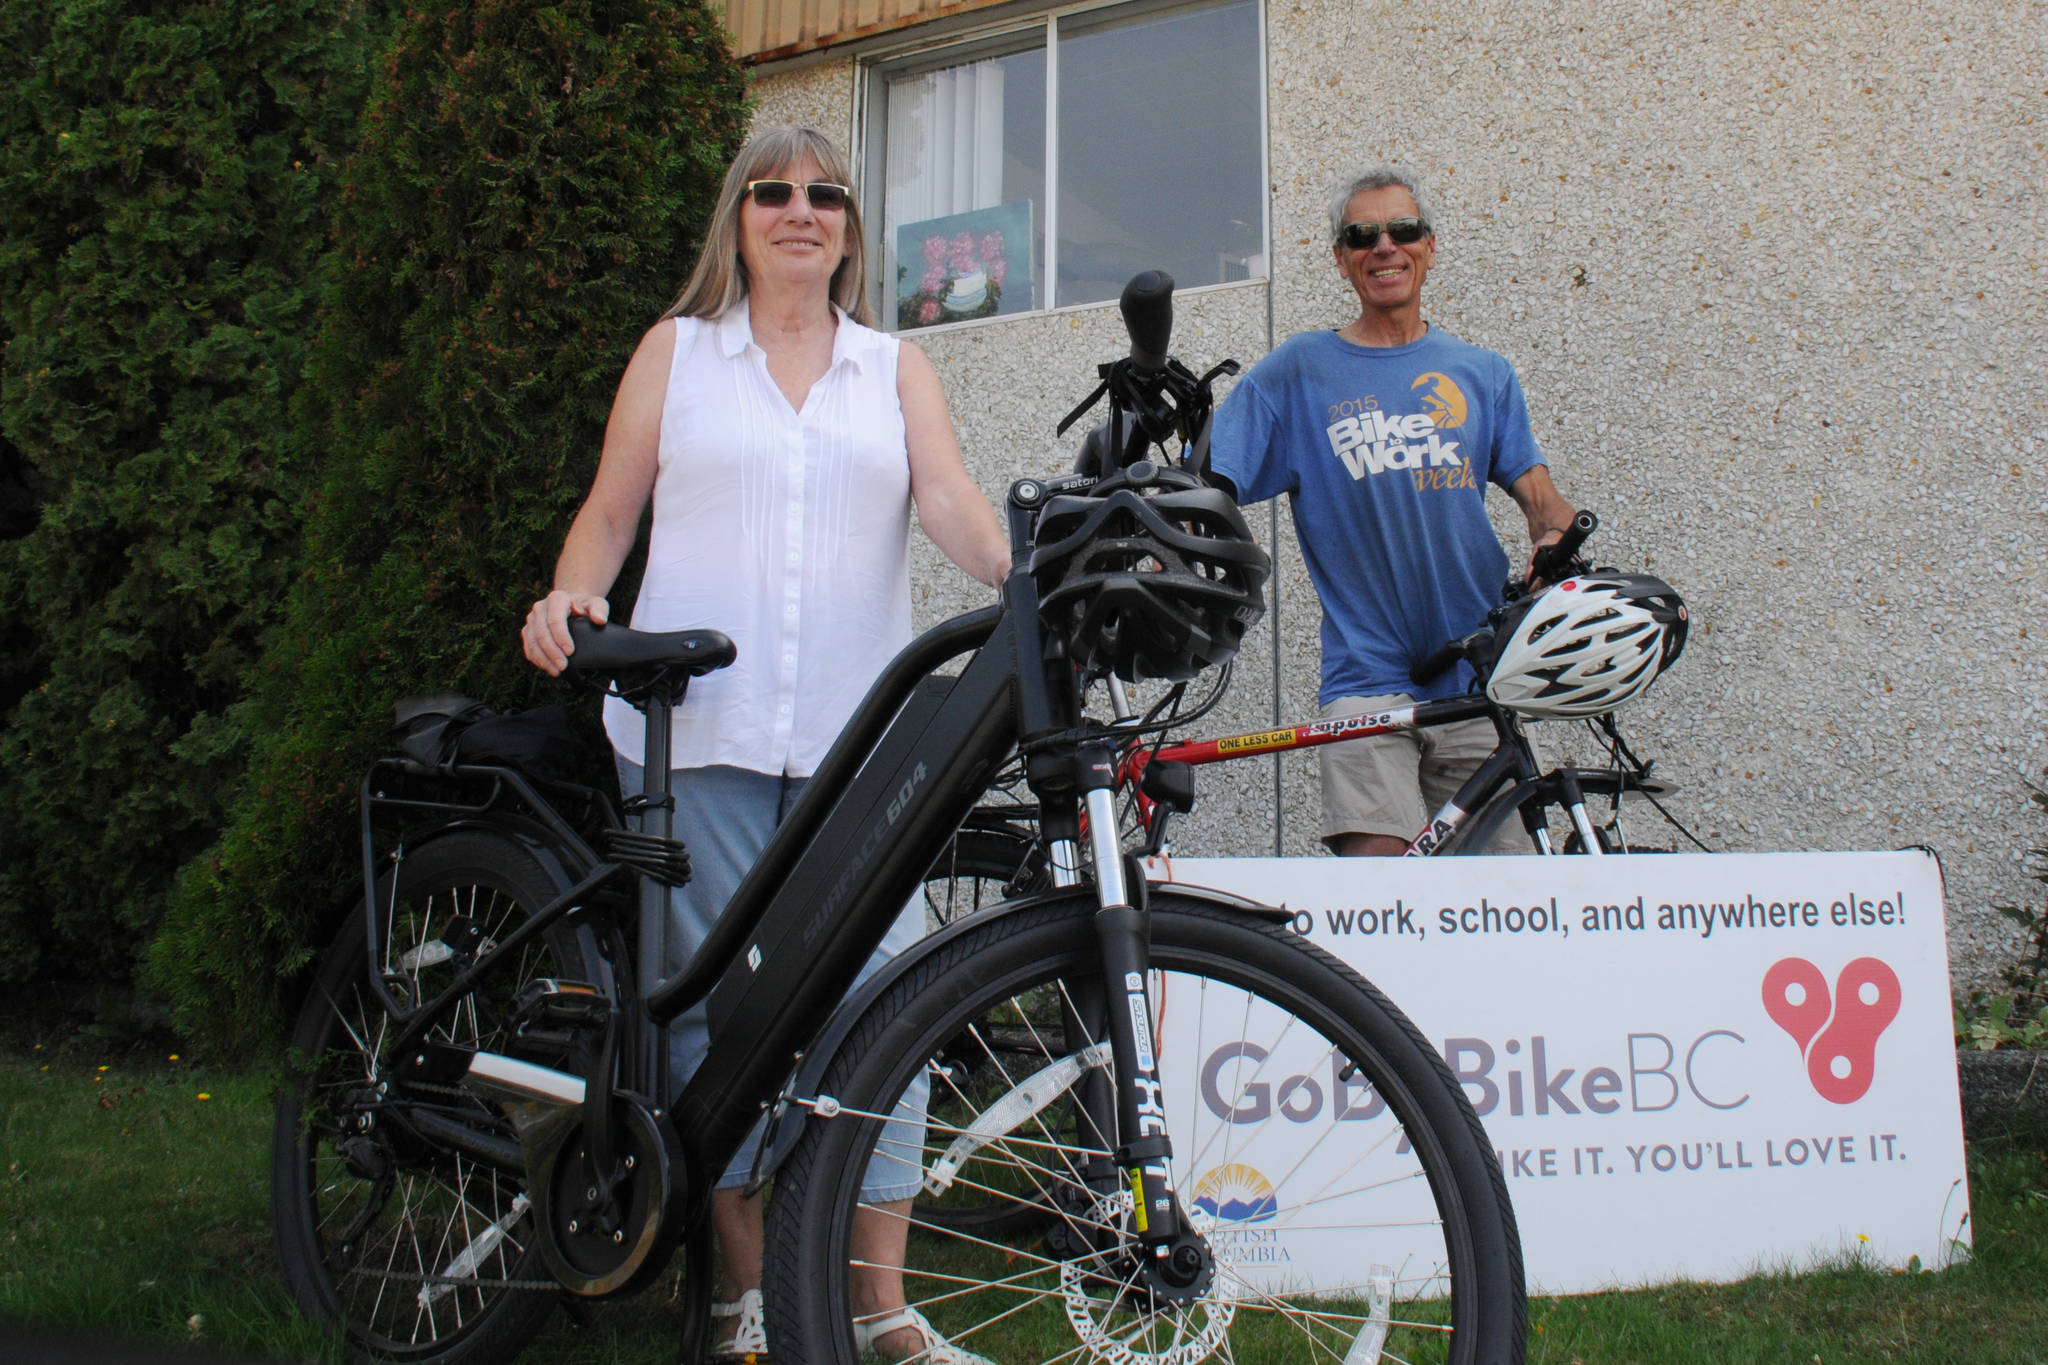 Go By Bike coordinators Candyse Roberts and John Mayba are ready for Go By Bike Week starting Sept. 28. (SUSAN QUINN / ALBERNI VALLEY NEWS)